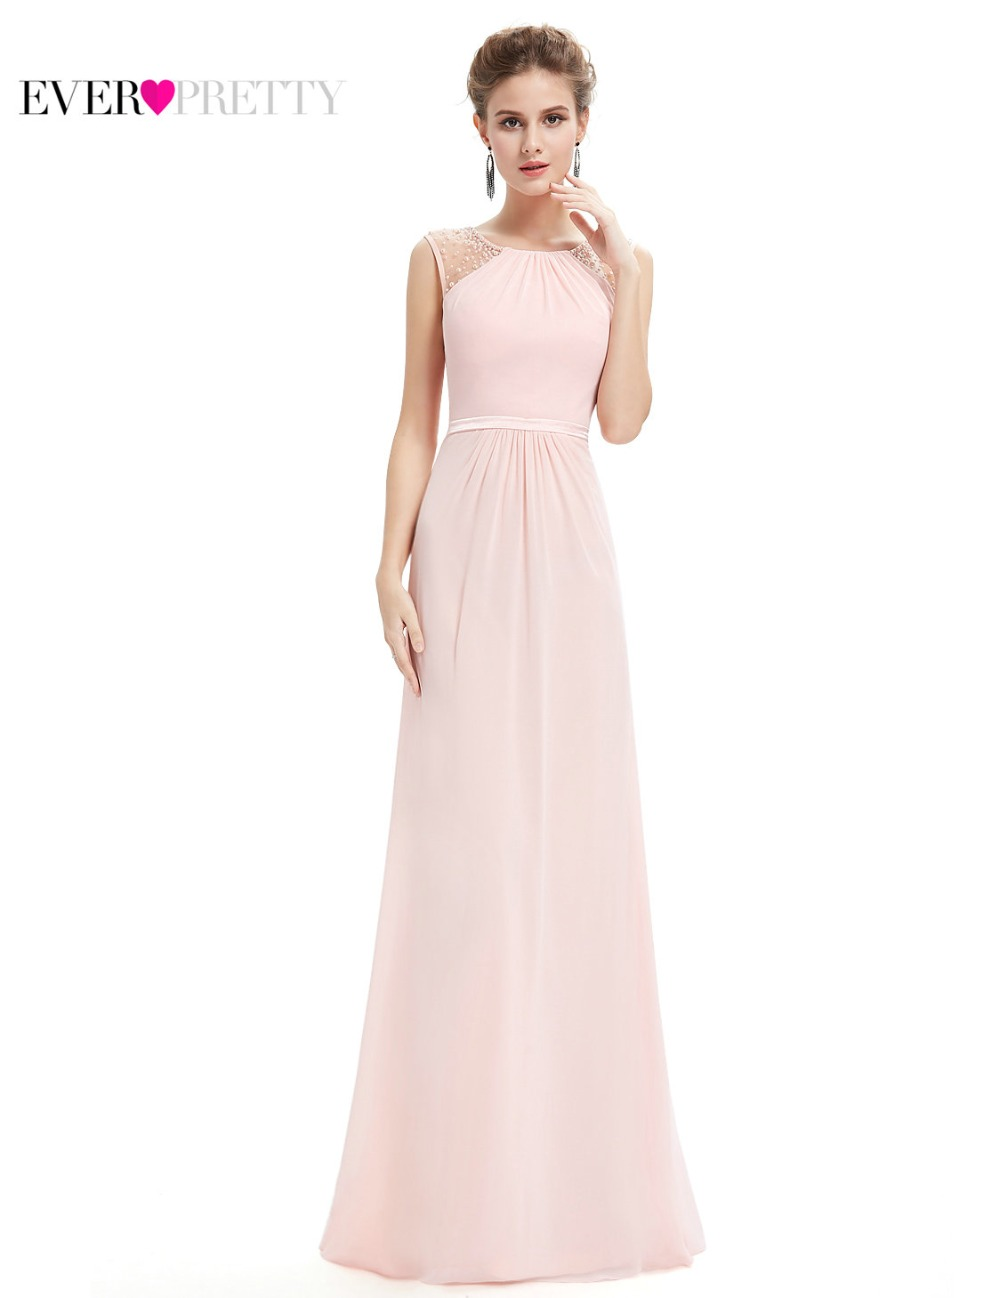 Clearance sale bridesmaid dresses he08742 pink women 39 s for Plus size wedding dresses on sale